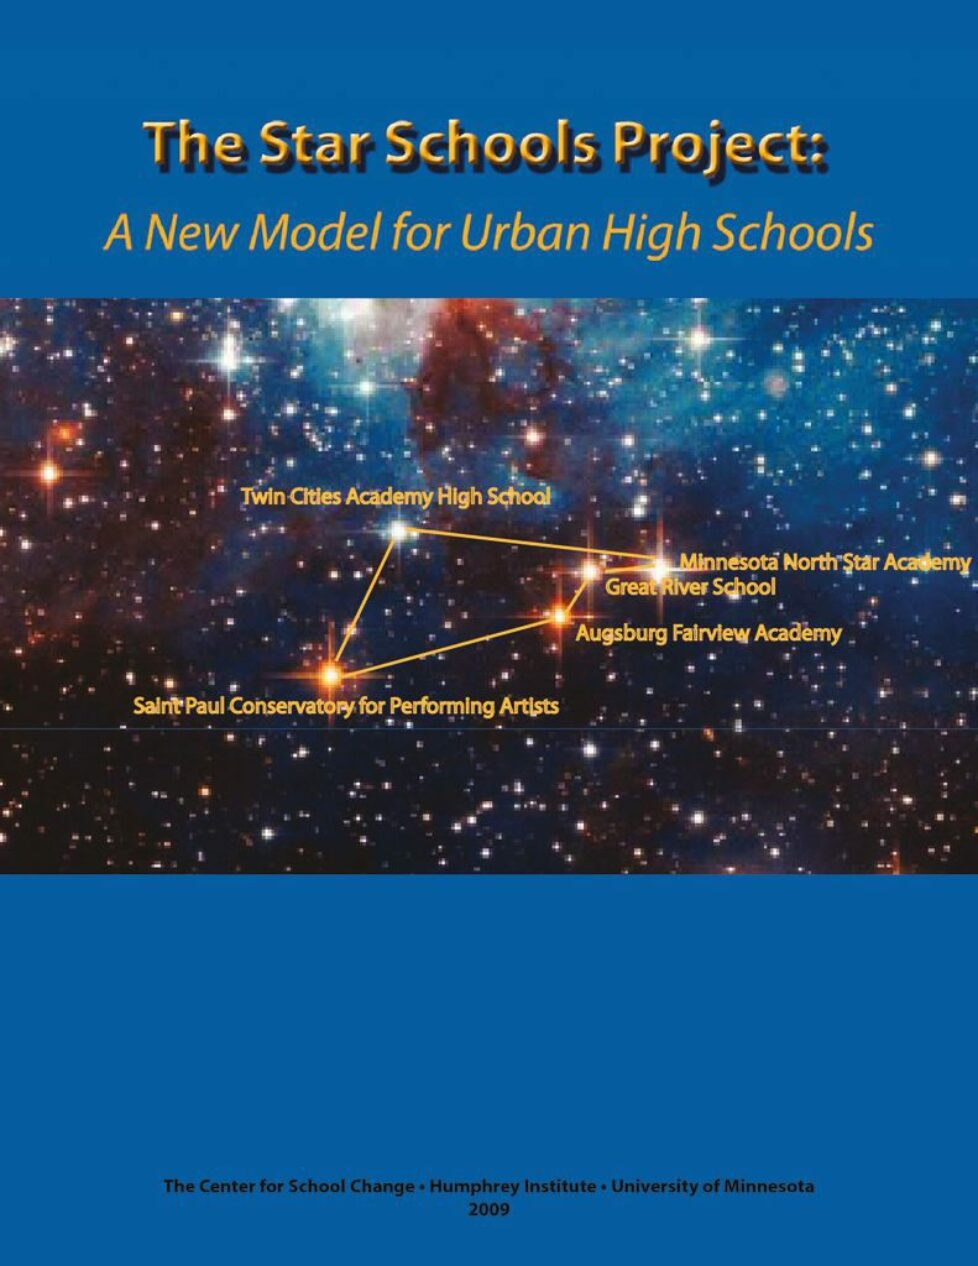 thumbnail of The Star Schools Project: A New Model for Urban High Schools